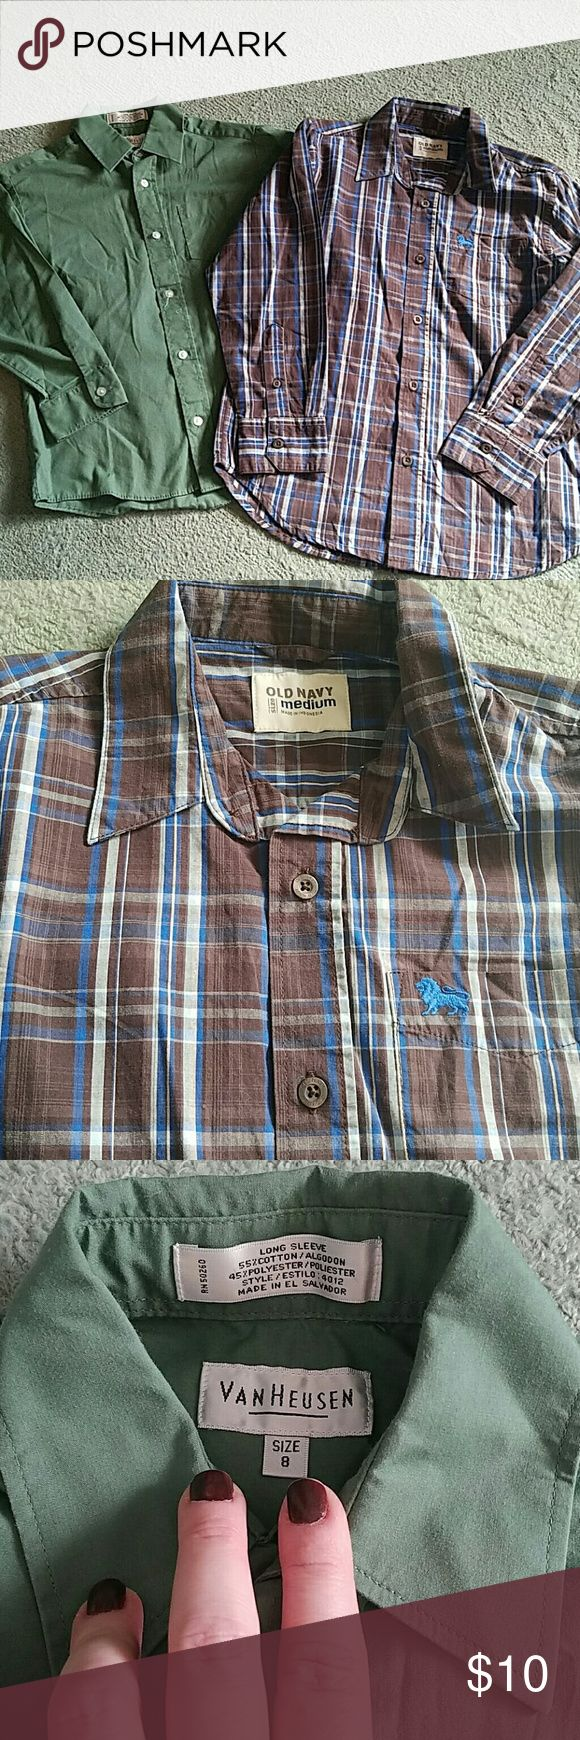 Boys dress shirts Two like new button down dress shirts. Green shirt is VanHeusen and 55% cotton 45% polyester. Size 8. Brown is Old Navy and new with tags. Also a Med. Van Heusen Shirts & Tops Button Down Shirts